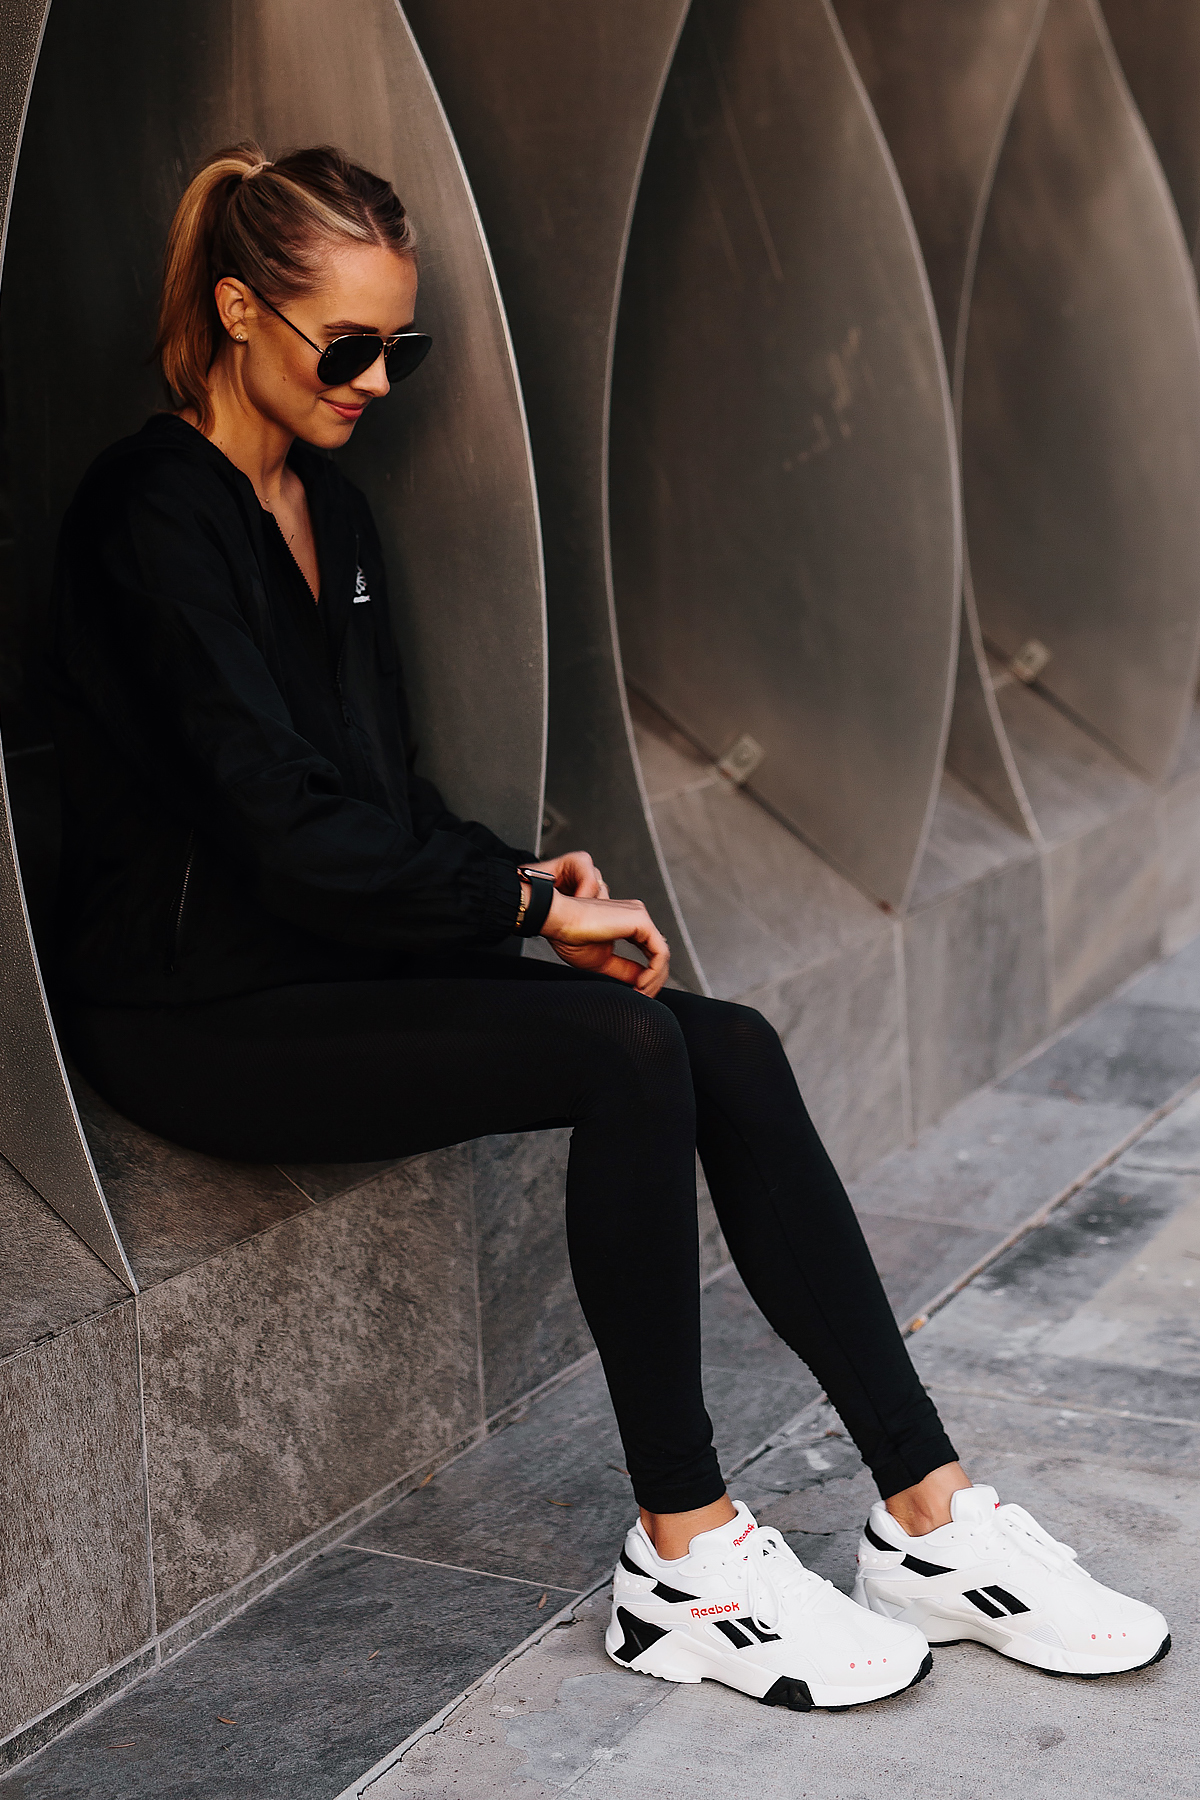 Blonde Woman Wearing Reebok Black Windbreaker Reebok Black Leggings Reebok Aztrek White Sneakers Fashion Jackson San Diego Fashion Blogger Activewear Street Style